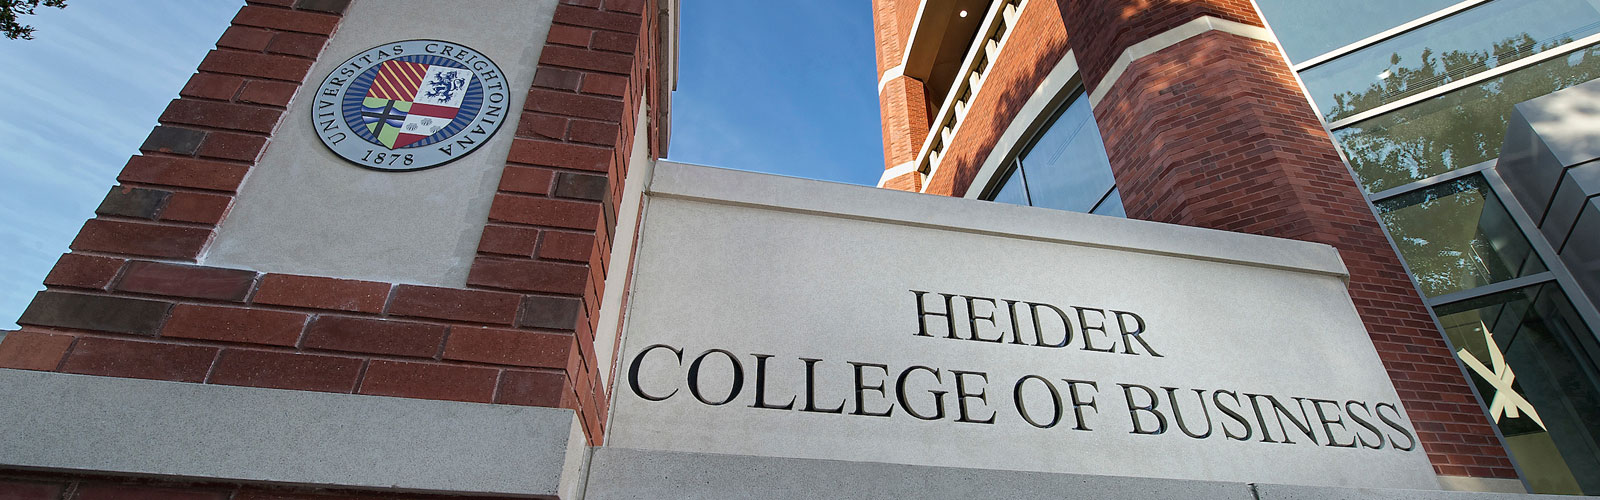 Heider College of Business at Creighton University